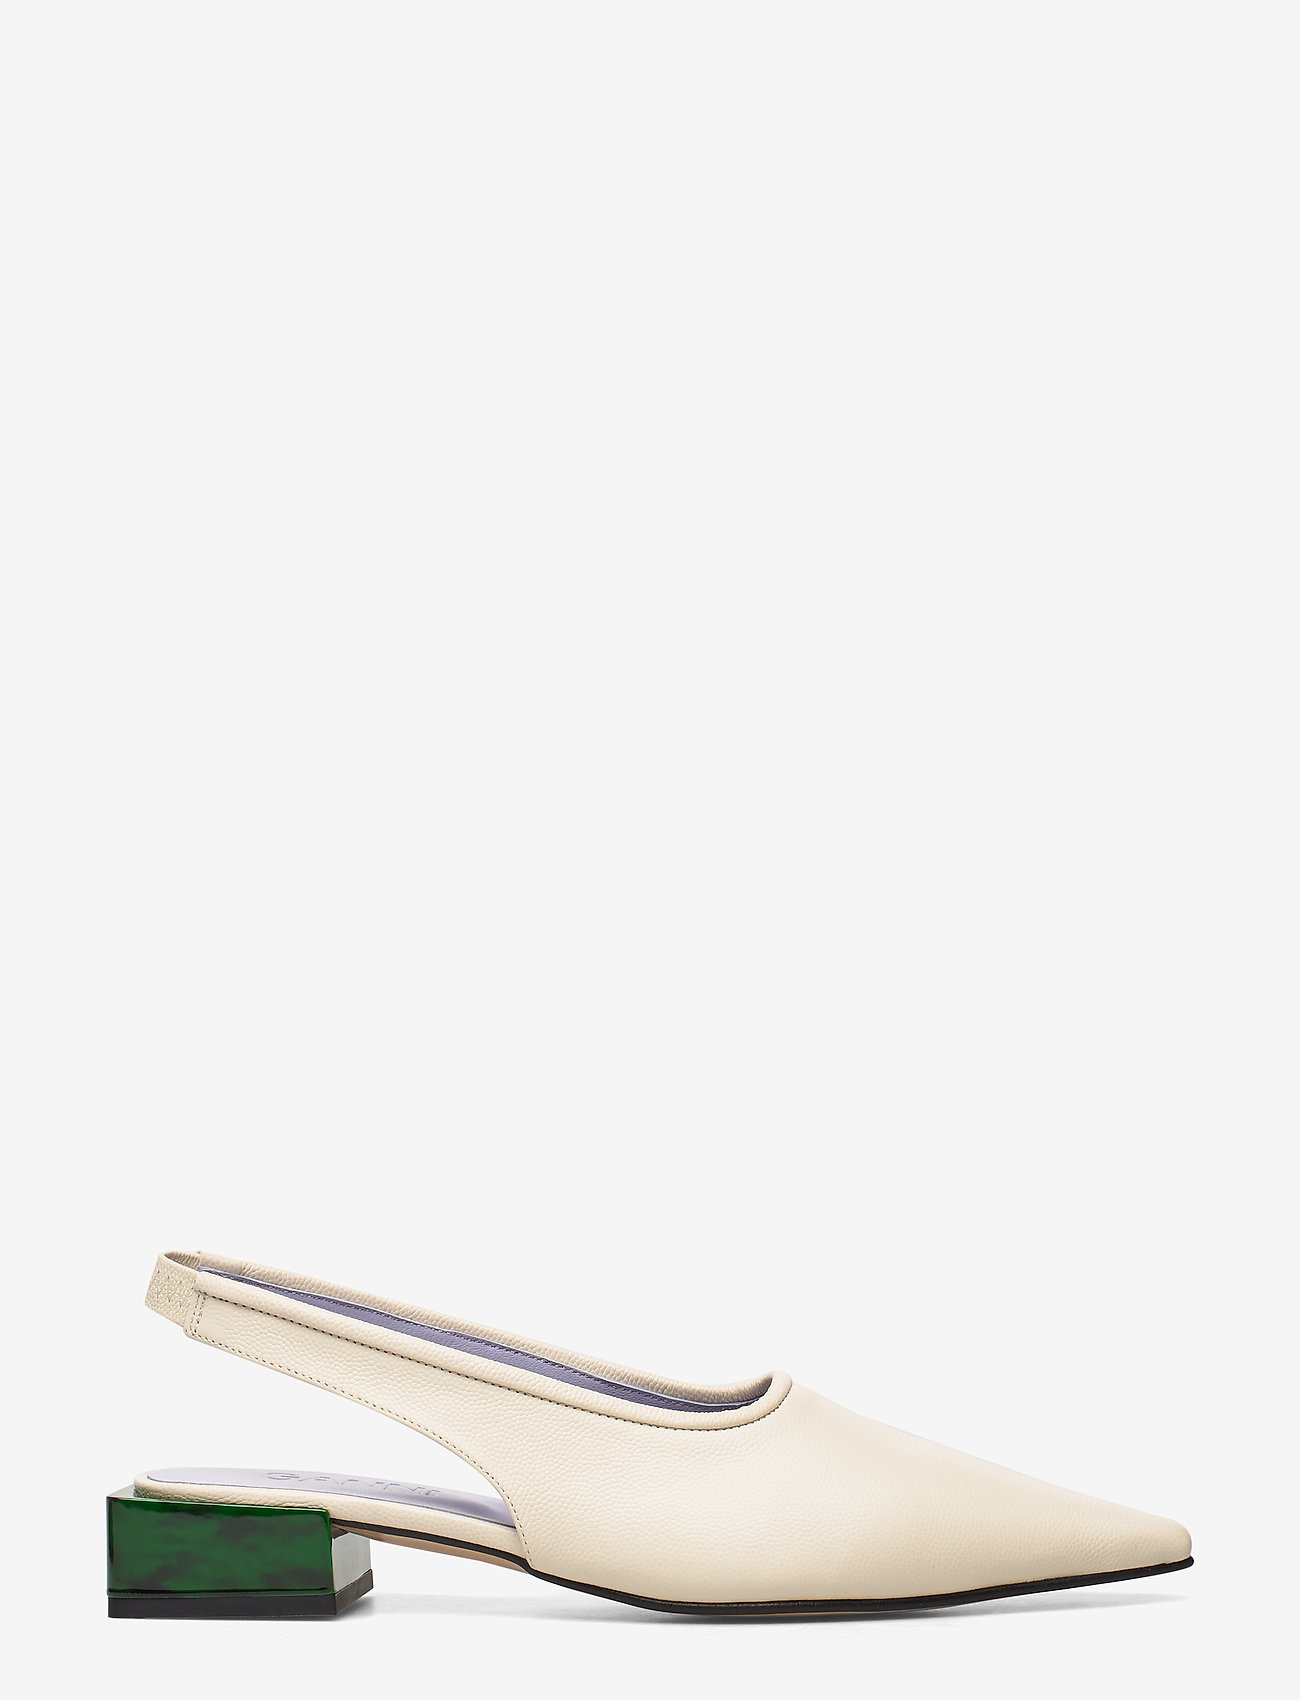 Ganni - Low Heel - sling backs - egret - 1